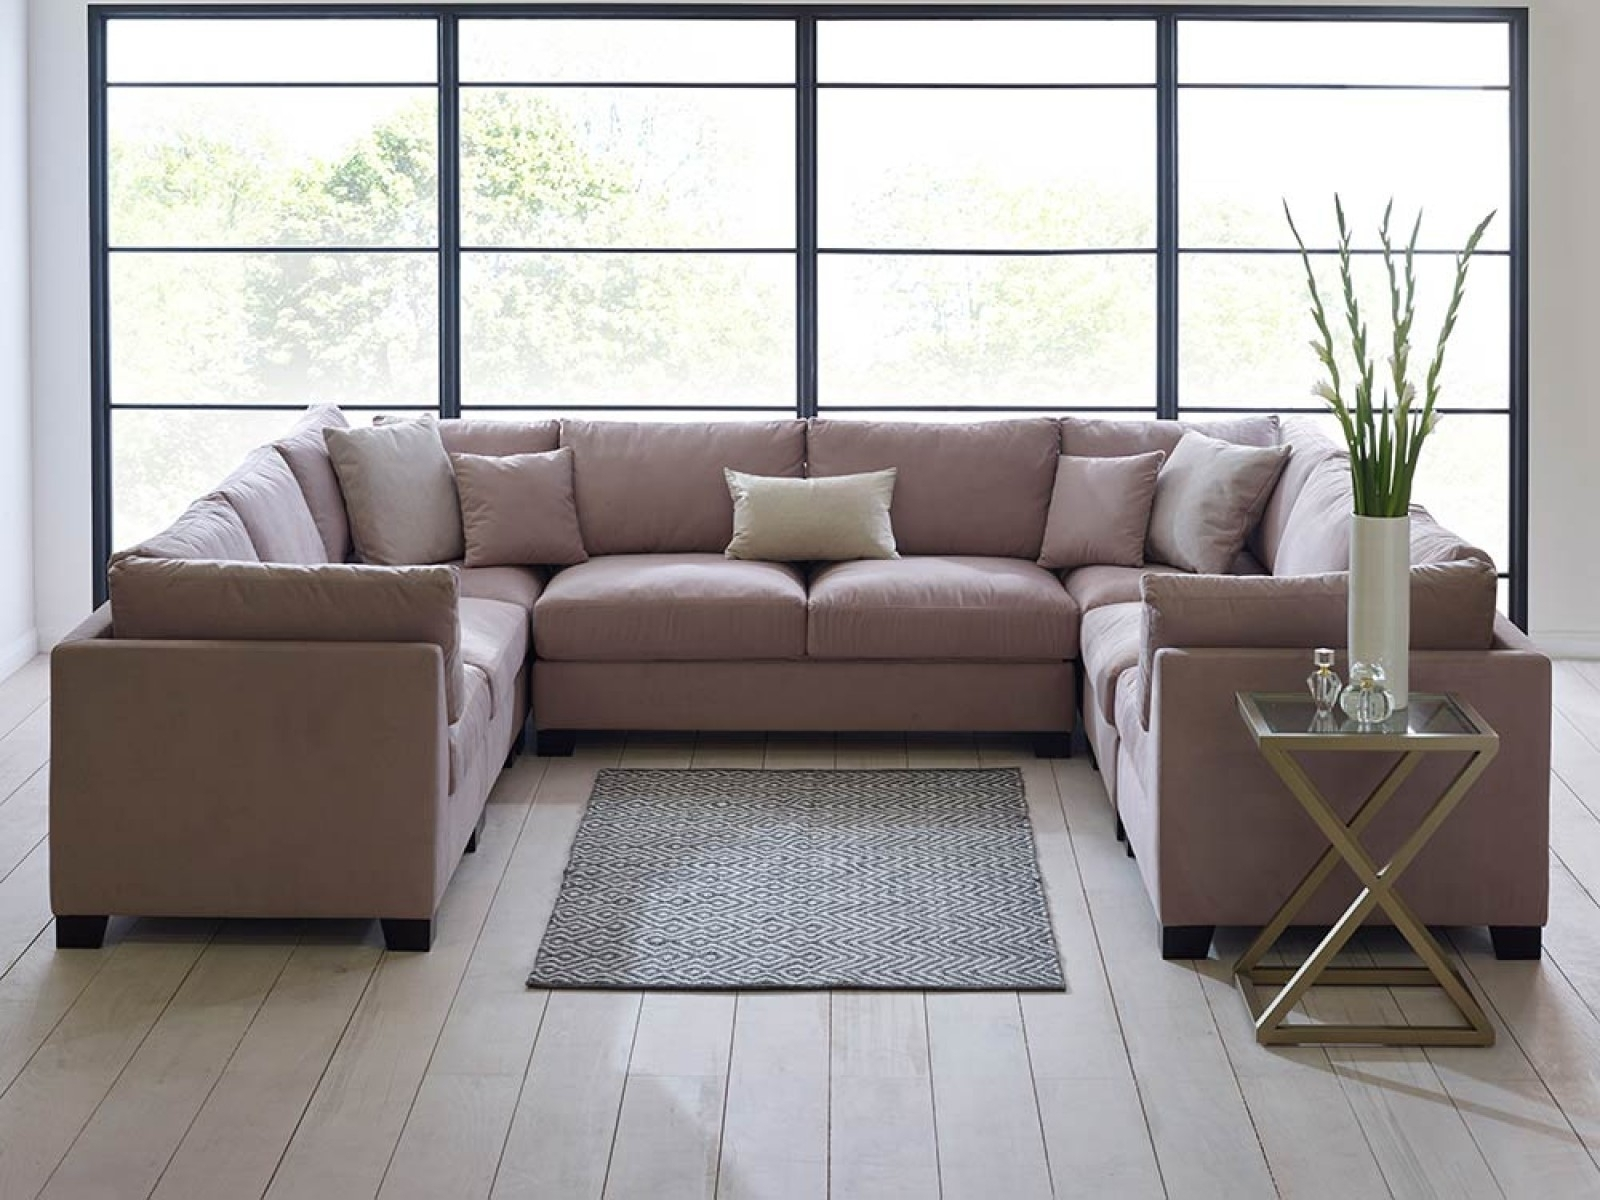 U Shaped Leather Sectional Sofas intended for Recent U Shaped Sofa - Google Search